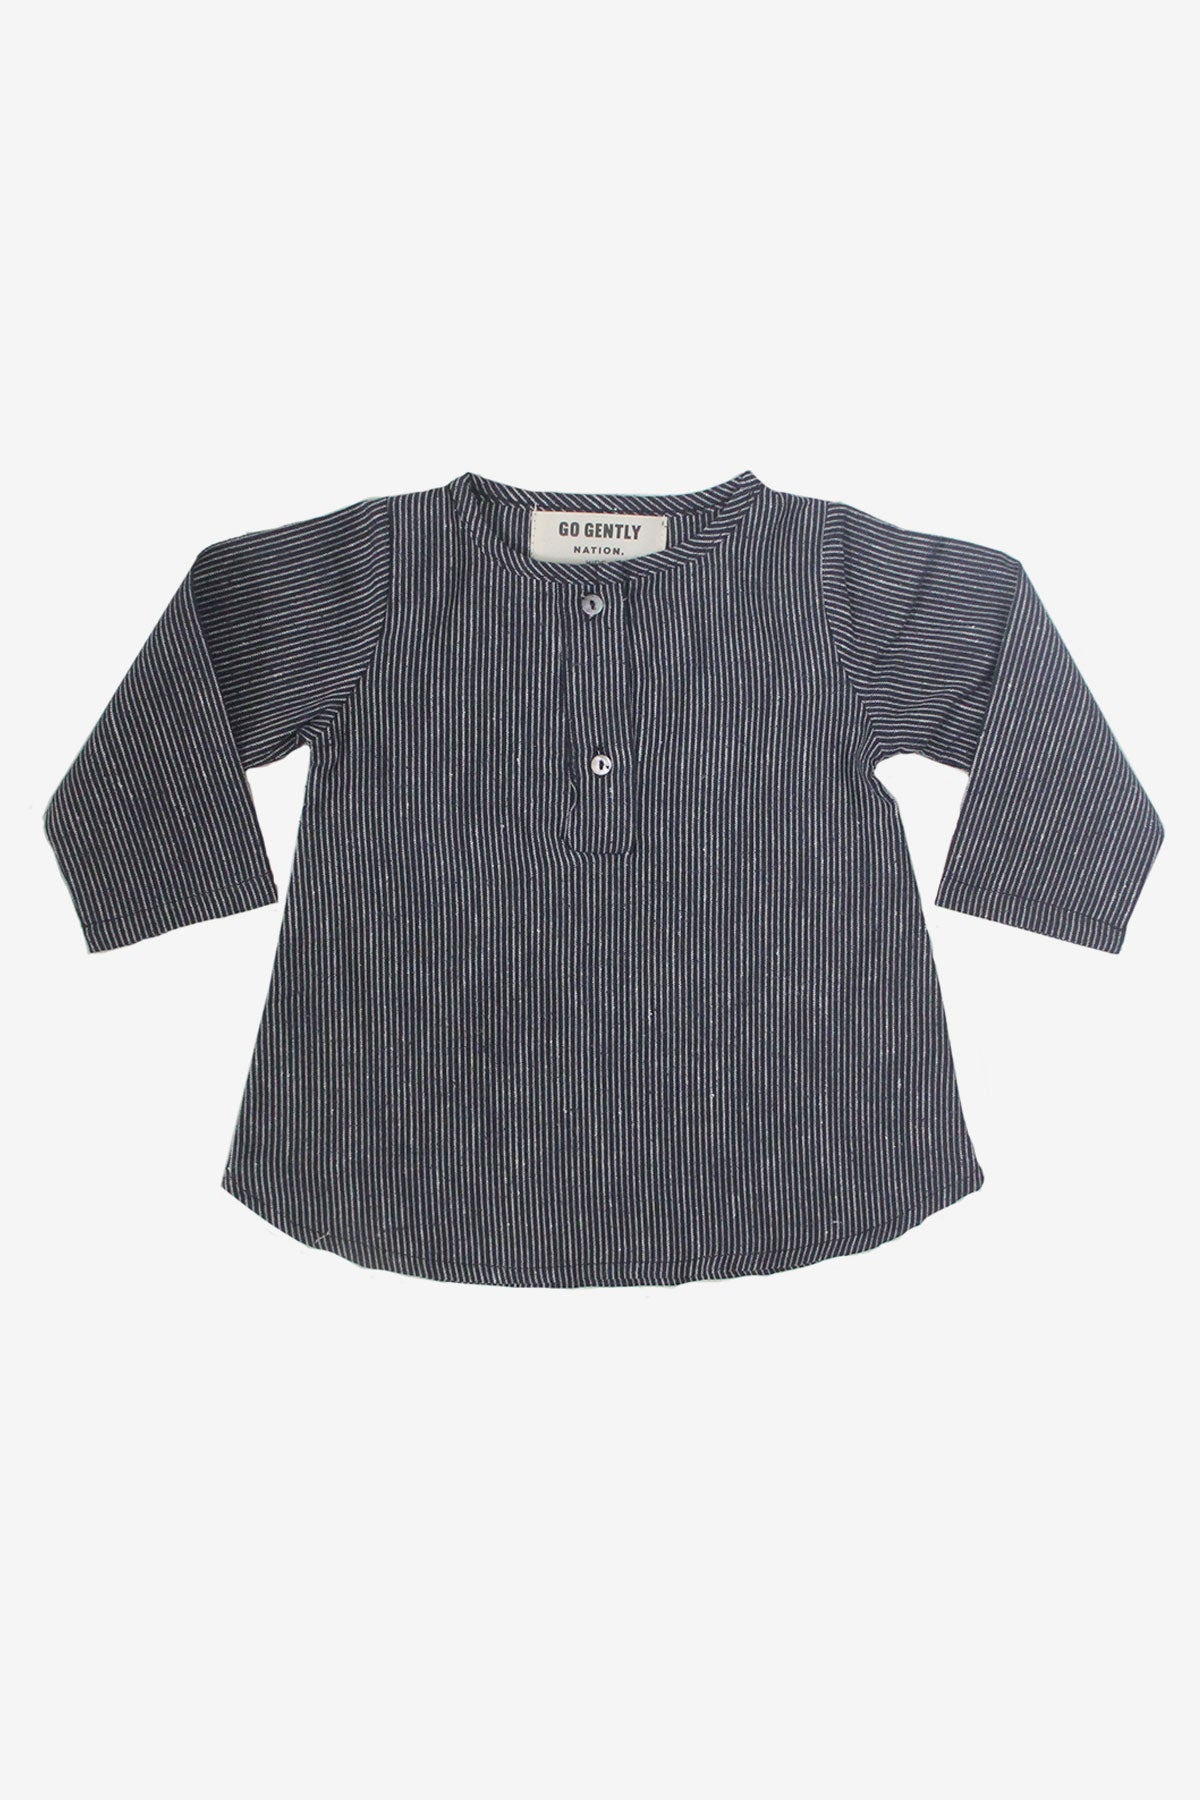 Go Gently Nation Placket Top